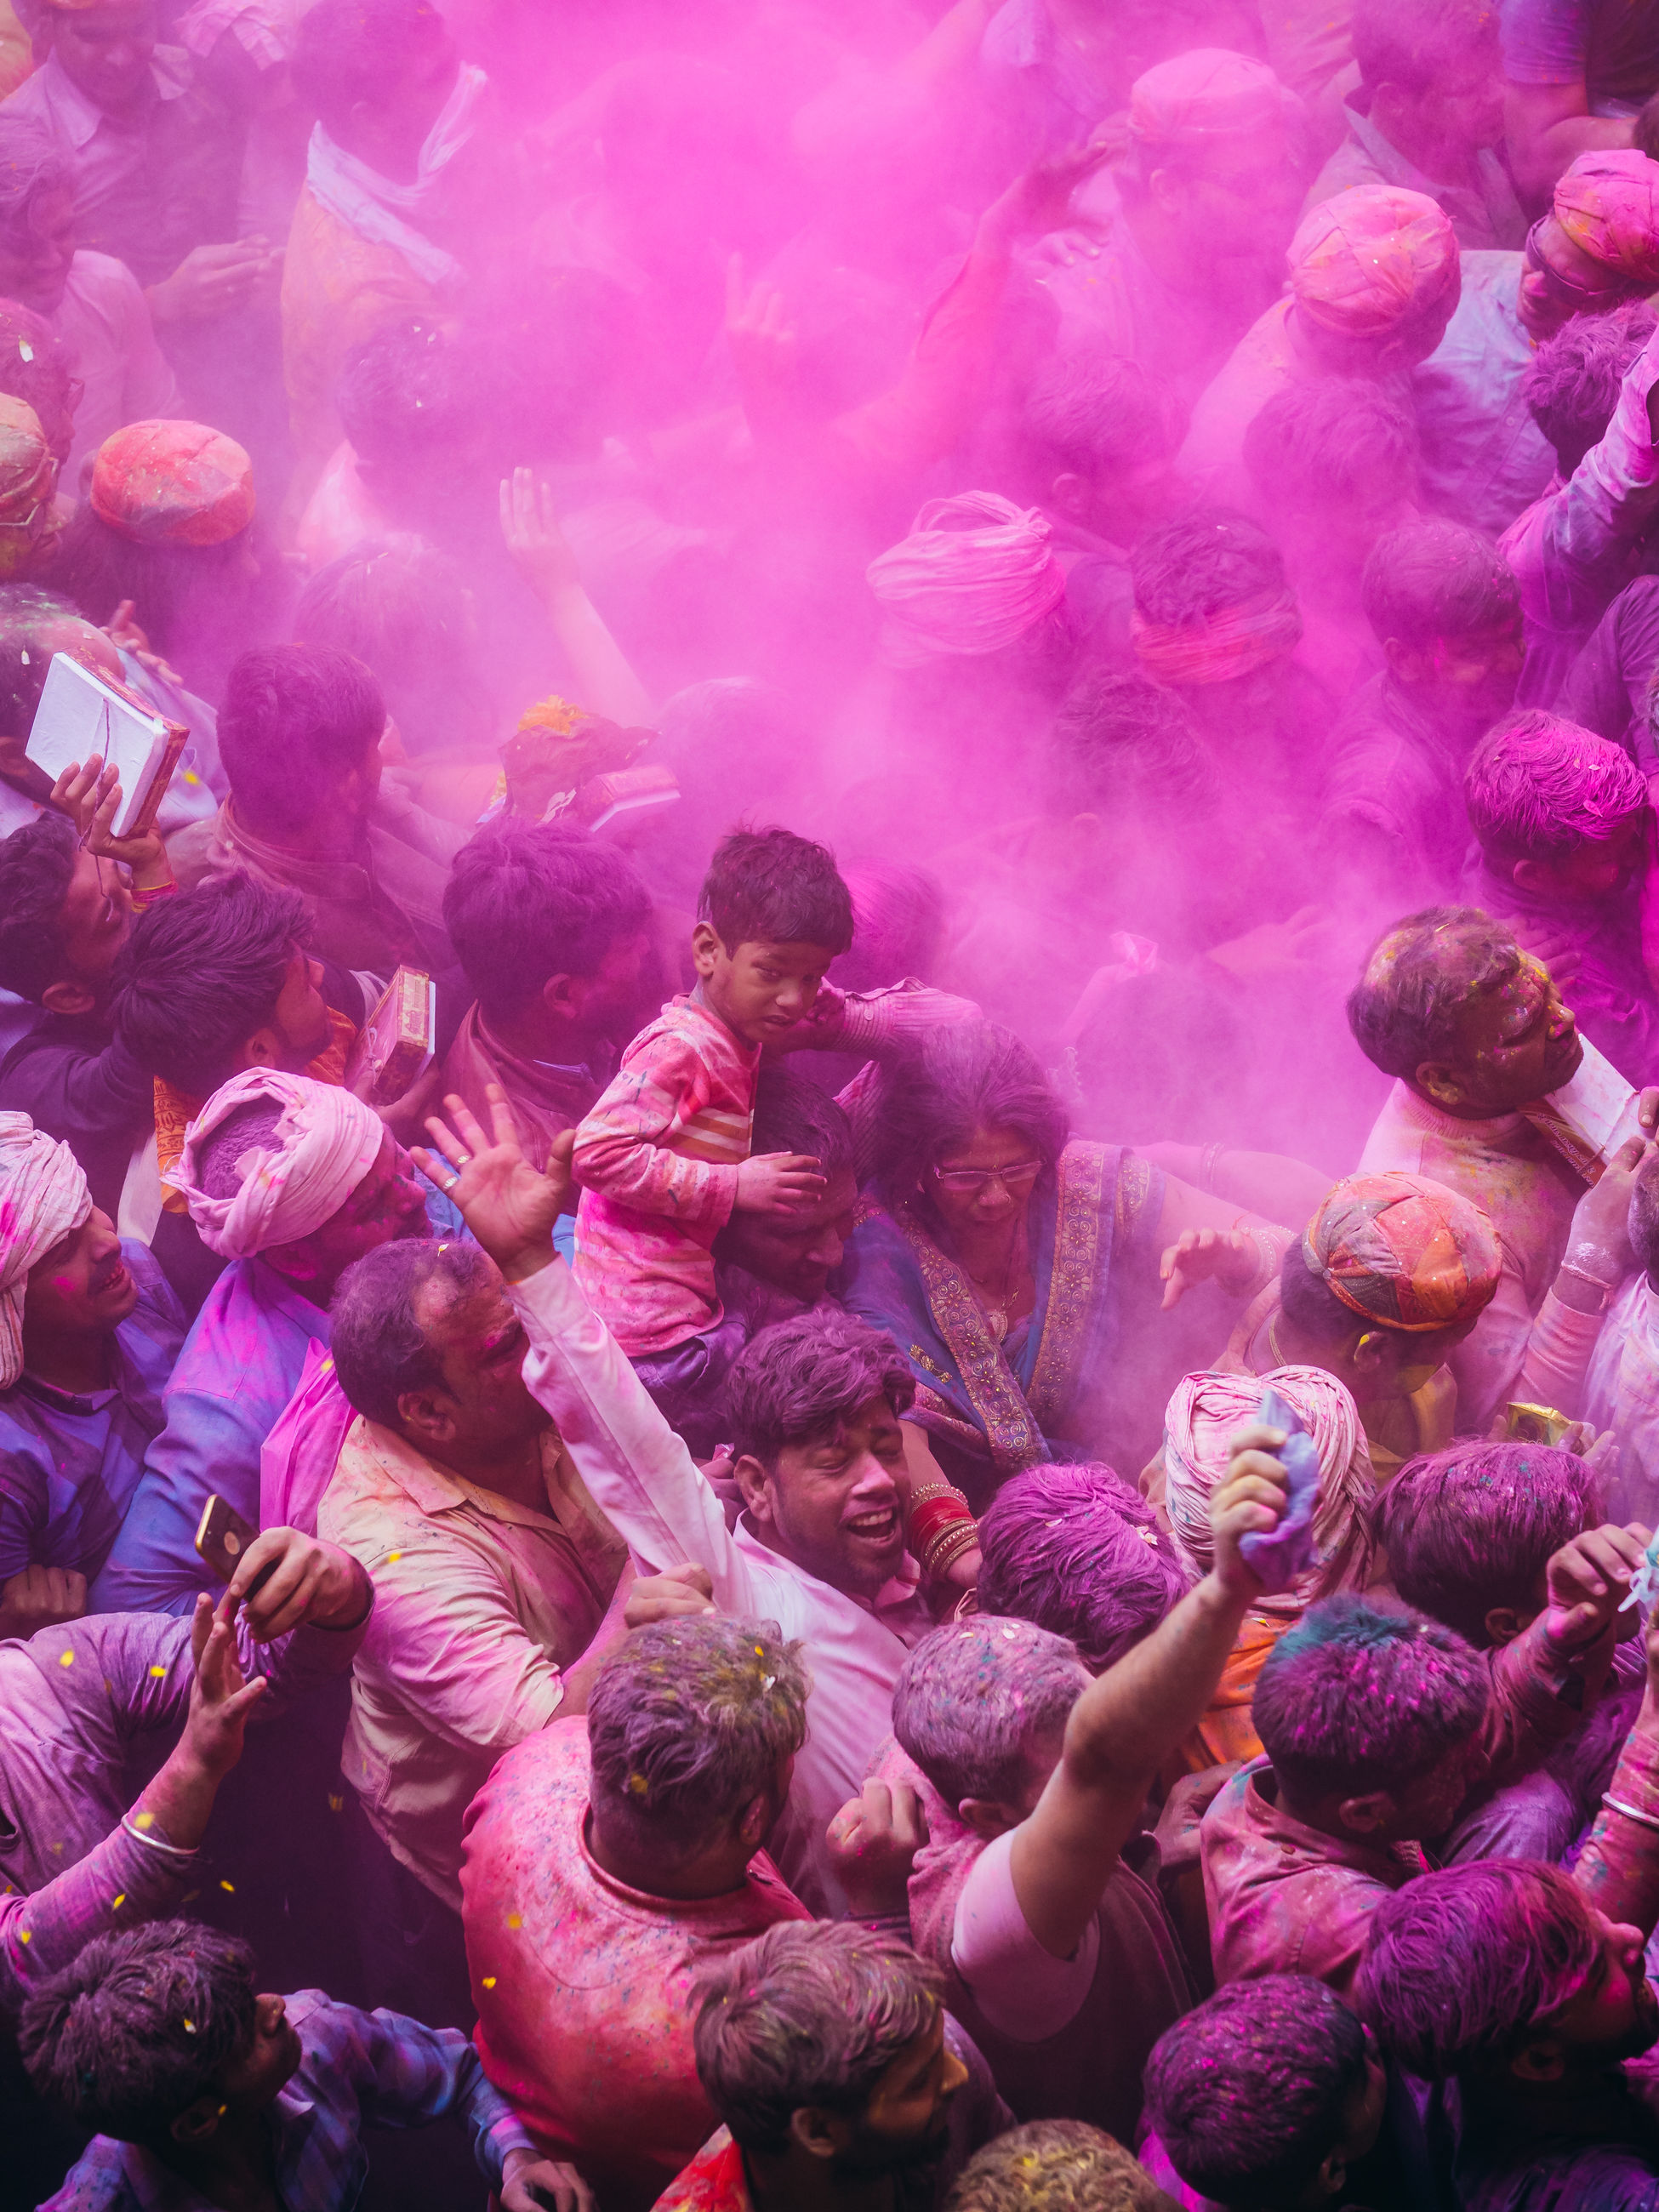 crowd, group of people, large group of people, real people, celebration, enjoyment, holi, powder paint, fun, men, day, high angle view, traditional festival, religion, multi colored, togetherness, festival